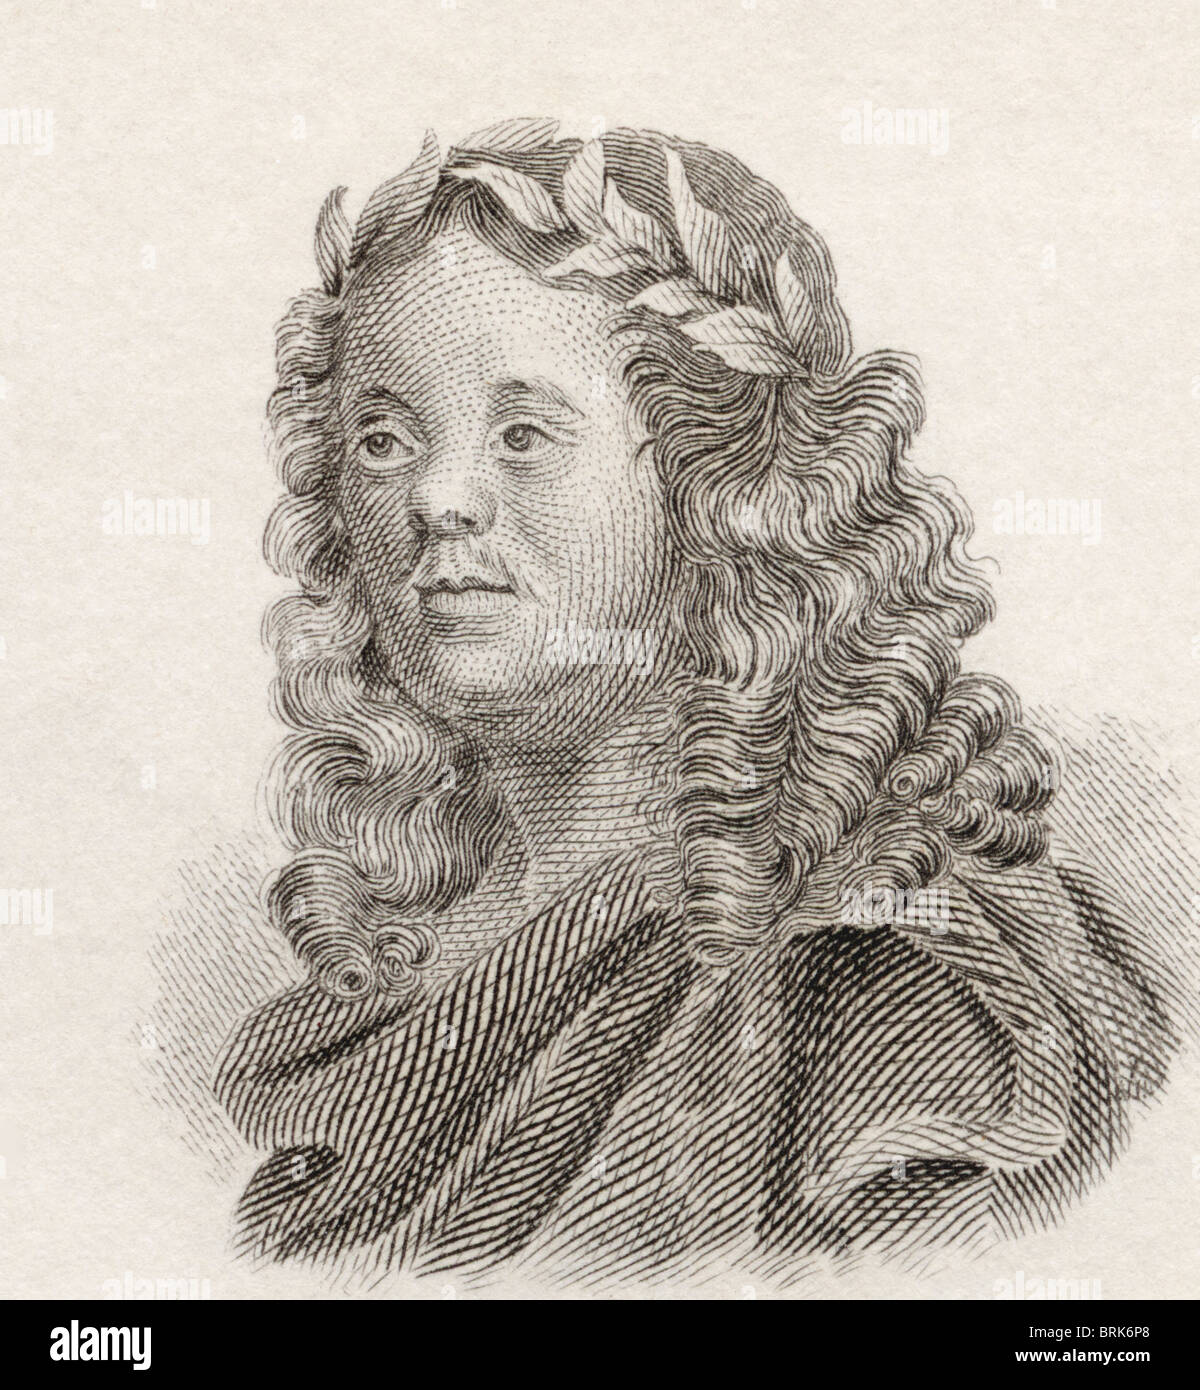 Sir William Davenant, 1606 to 1668. English poet and playwright. - Stock Image